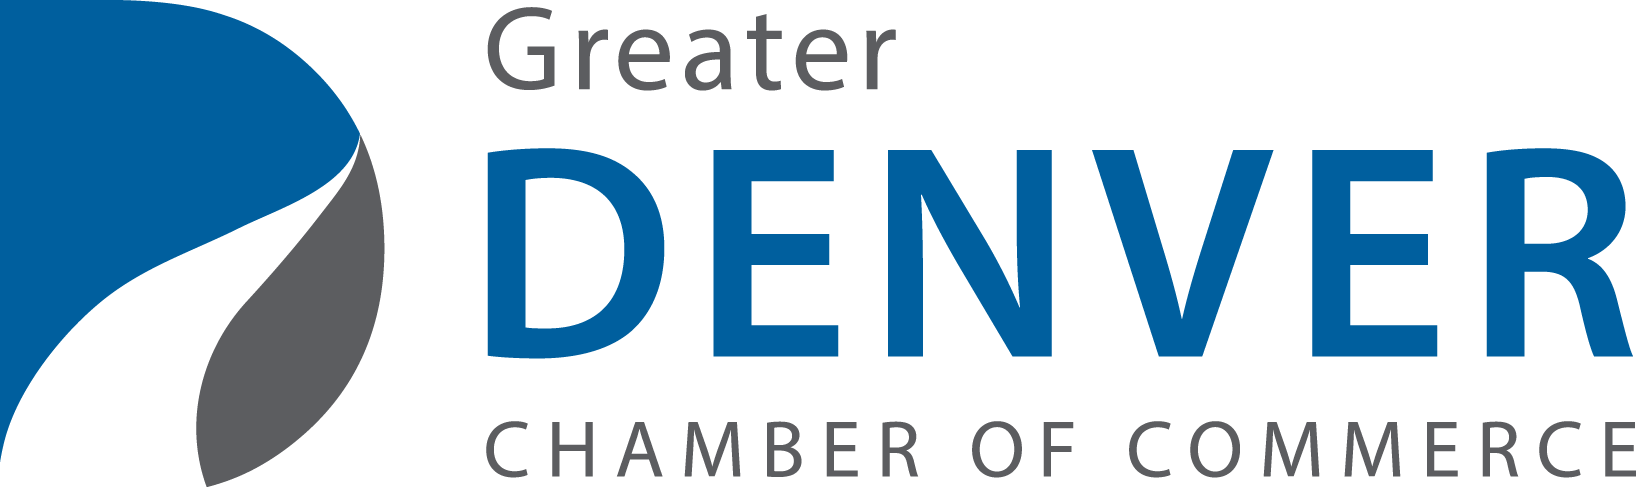 Greater Denver Chamber of Commerce